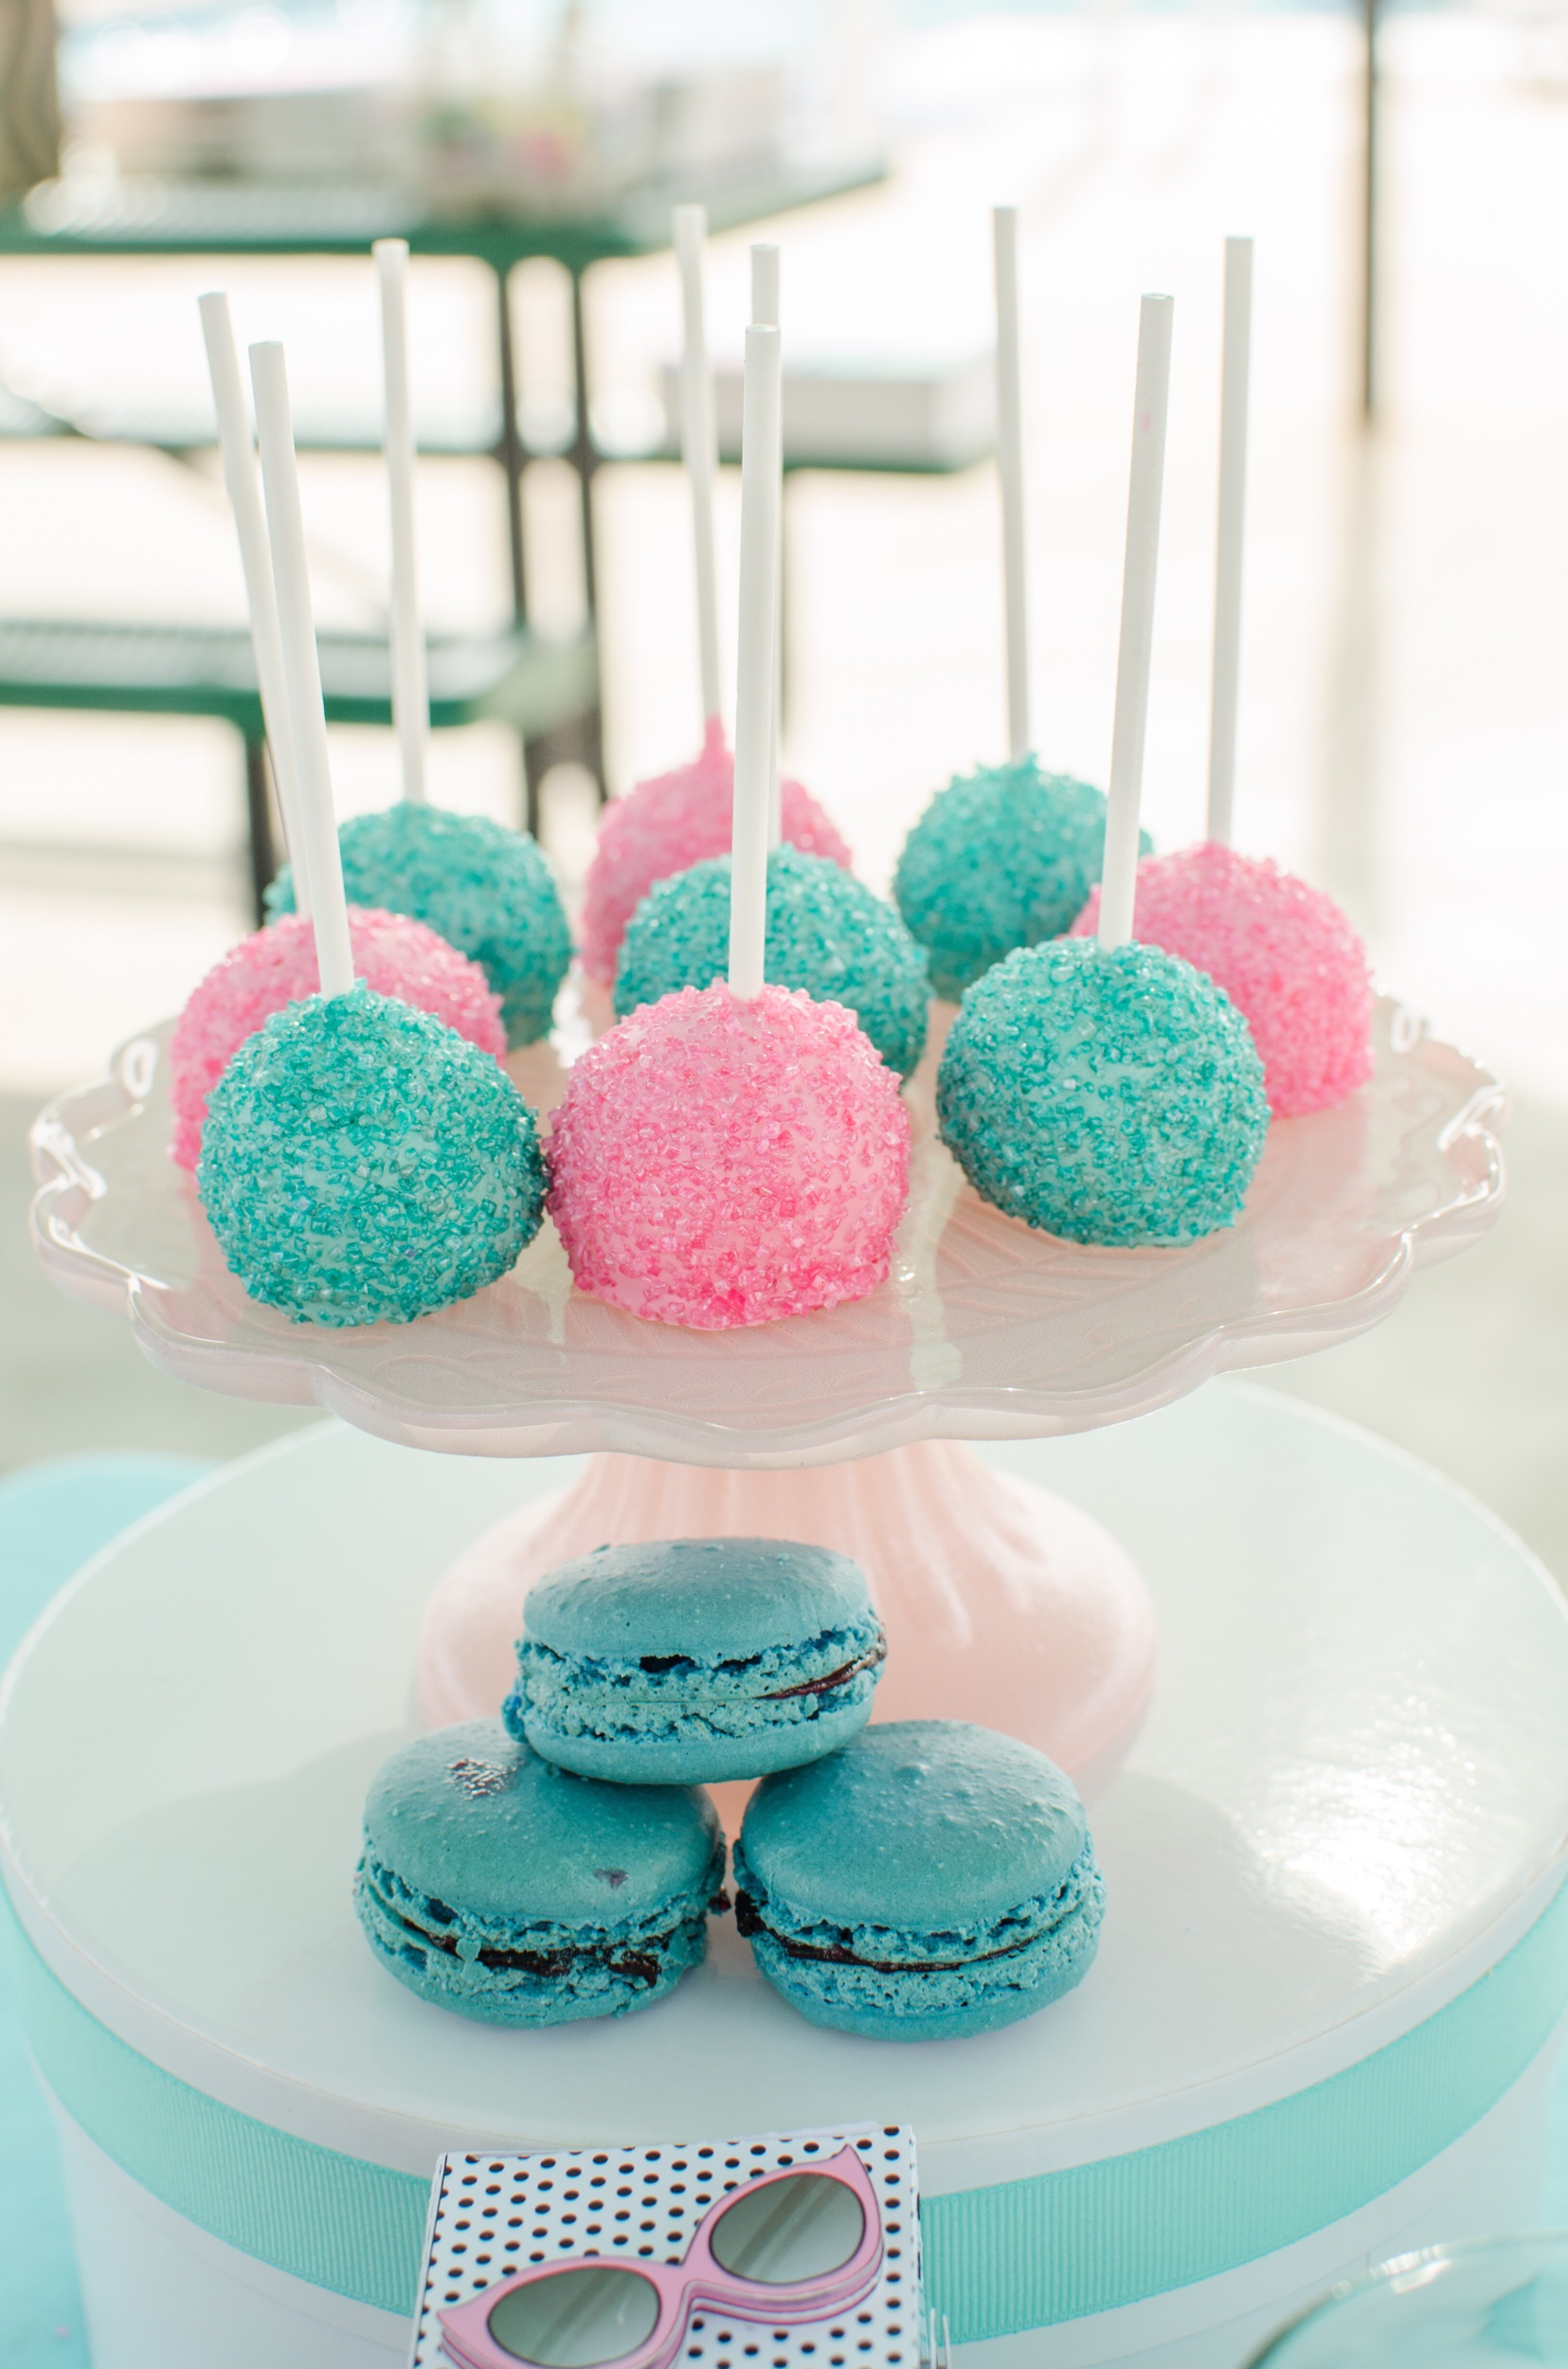 Pink and blue dessert ideas for a girls birthday party. Party styling by Mint Event Design www.minteventdesign.com